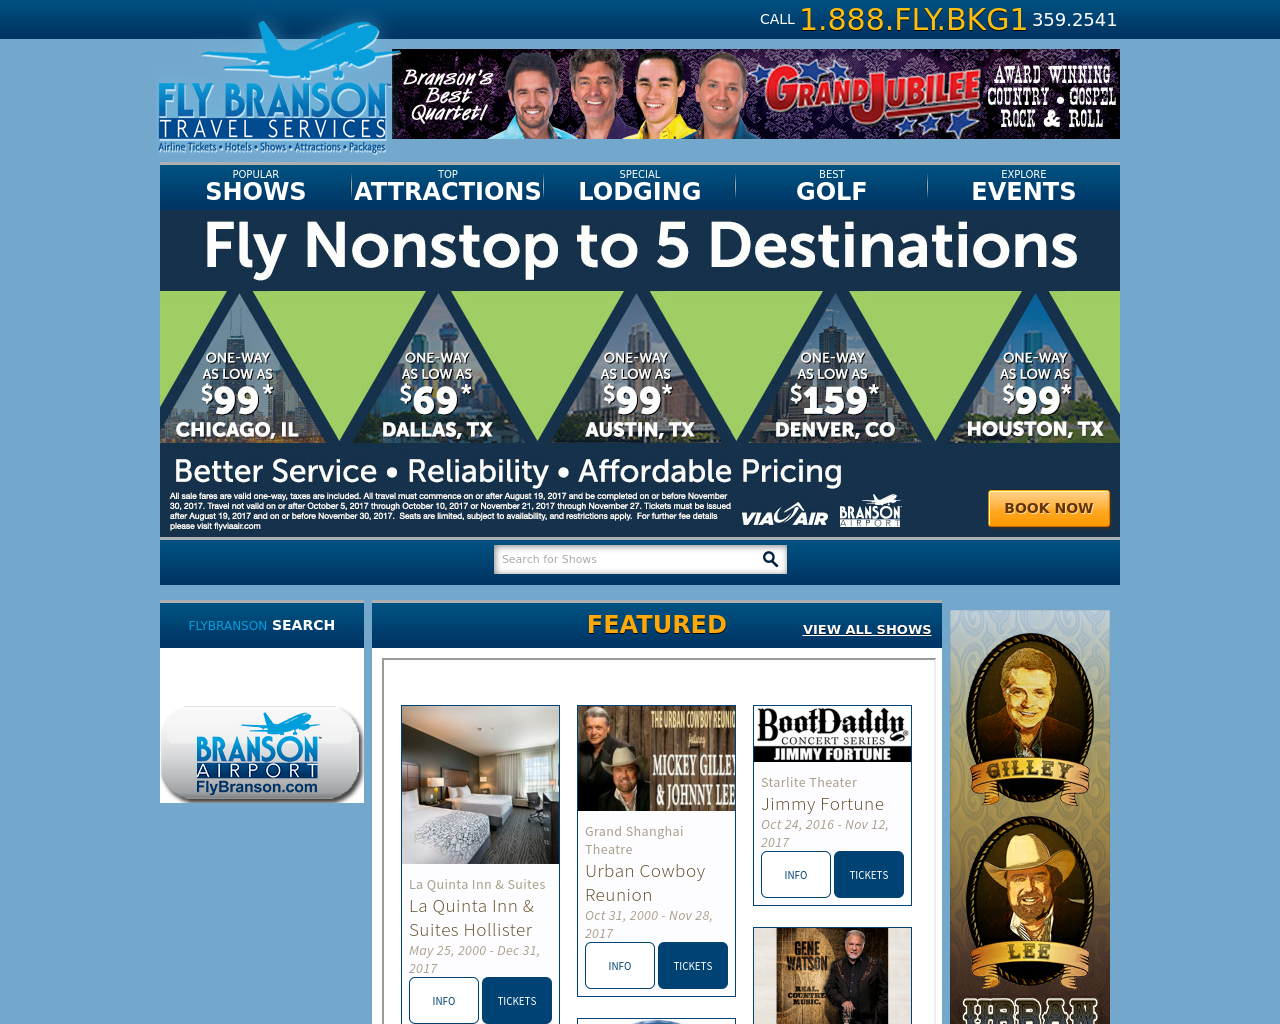 Fly-Branson-Travel-Services-Advertising-Reviews-Pricing